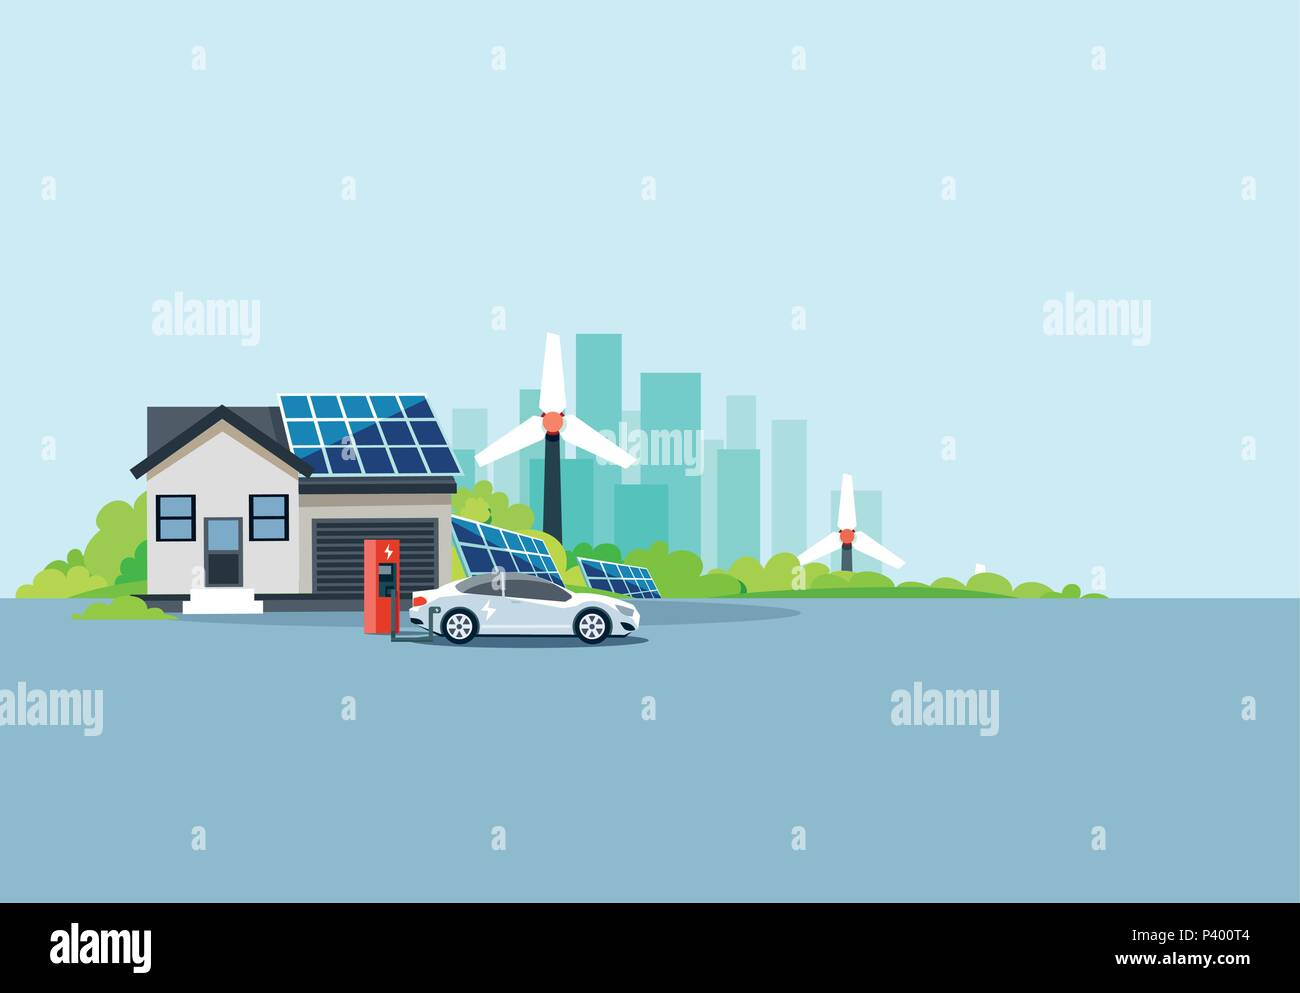 Flat vector illustration of an electric car at charging station parked nearby house with solar panels and wind turbines producing electricity. - Stock Vector